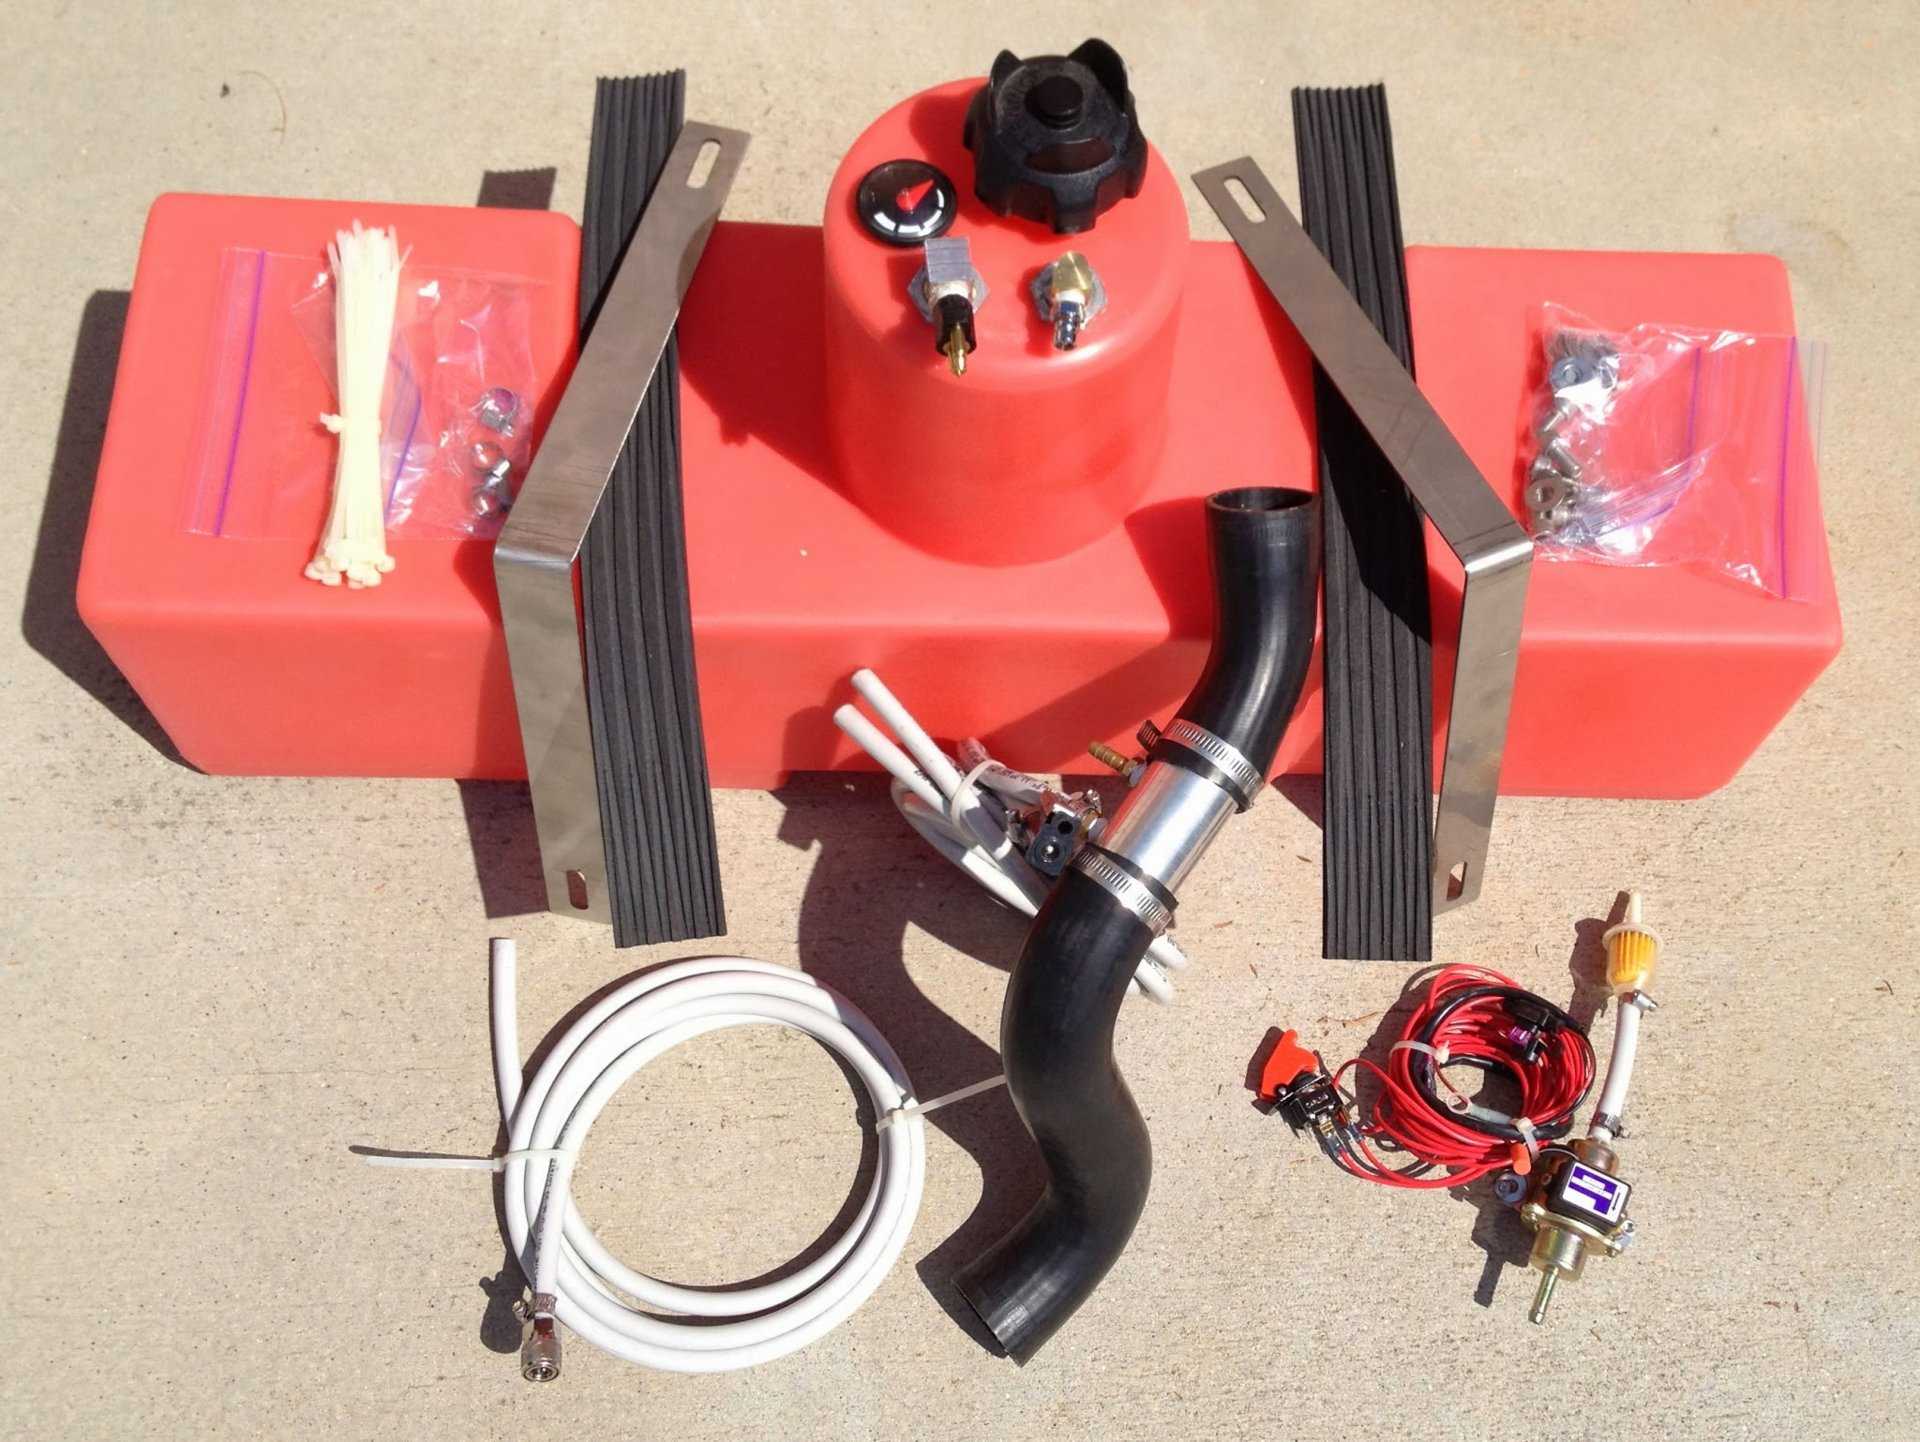 Auxiliary Fuel Transfer Tank For Pwc Caddy Bloodydecks